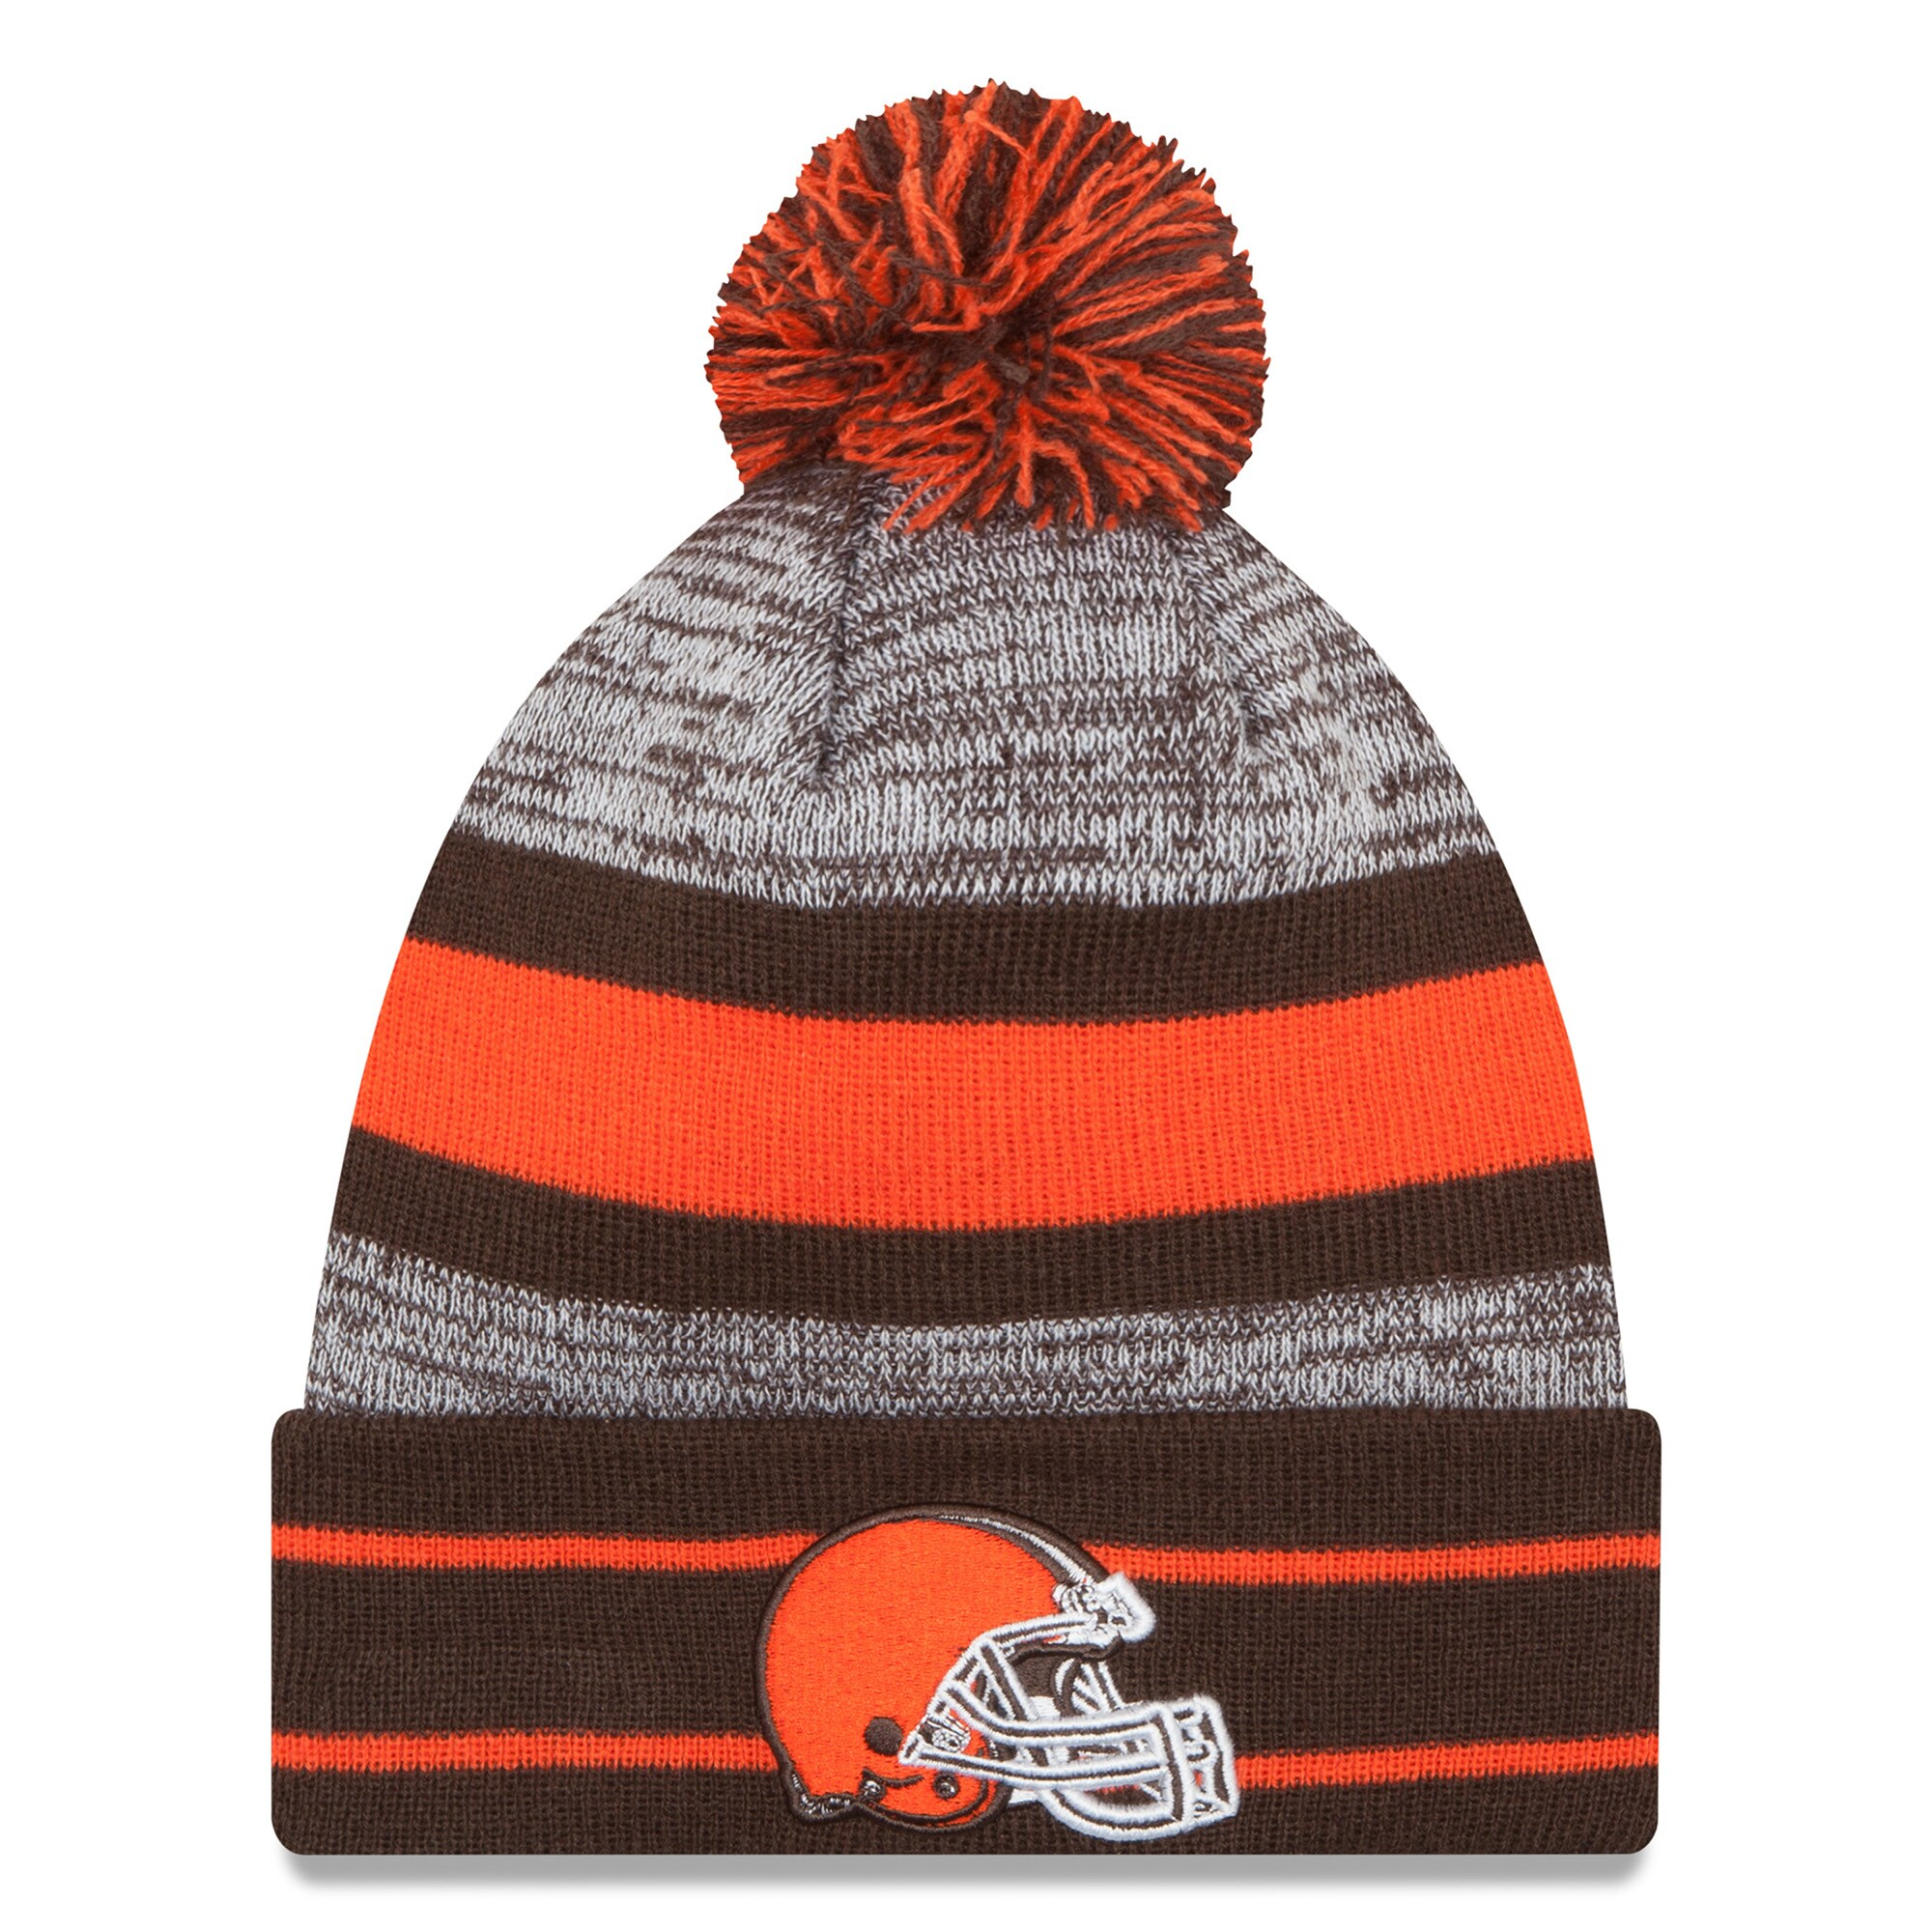 Cleveland Browns New Era Team Logo Cuffed Knit Hat with Pom - Brown